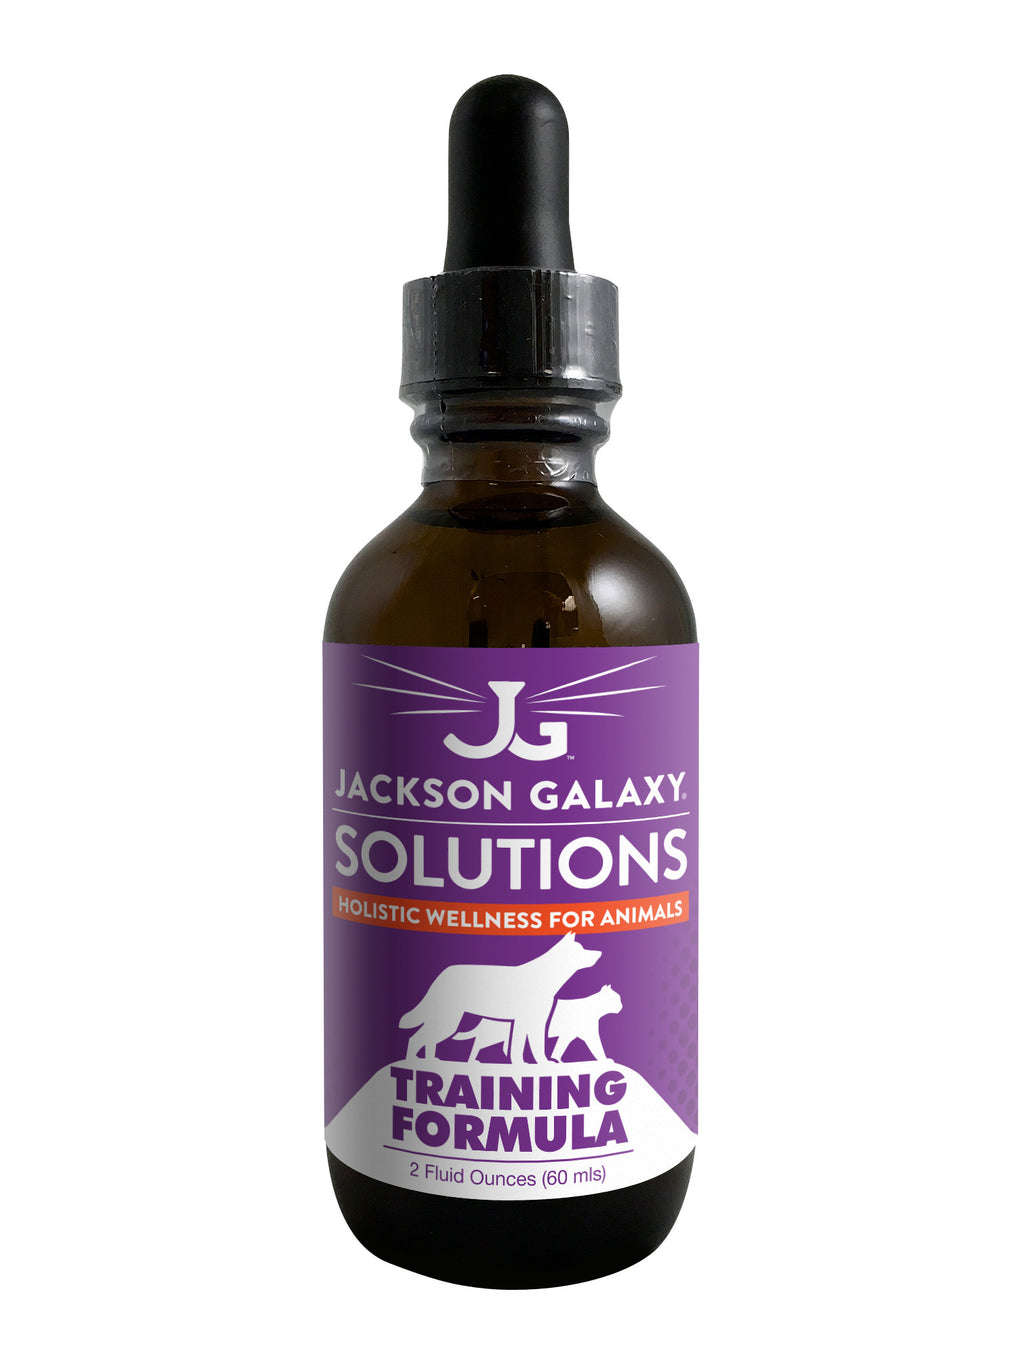 Jackson Galaxy Solutions Training Formula